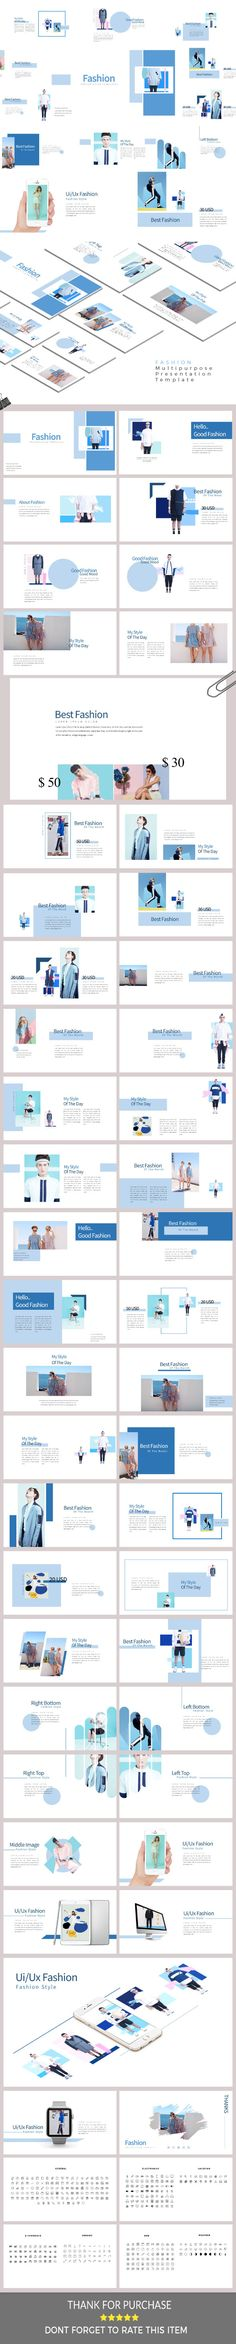 84 best free presentation templates images on pinterest in 2018 fashion creative presentation templates creative powerpoint templates download link https cute powerpointprofessional toneelgroepblik Image collections